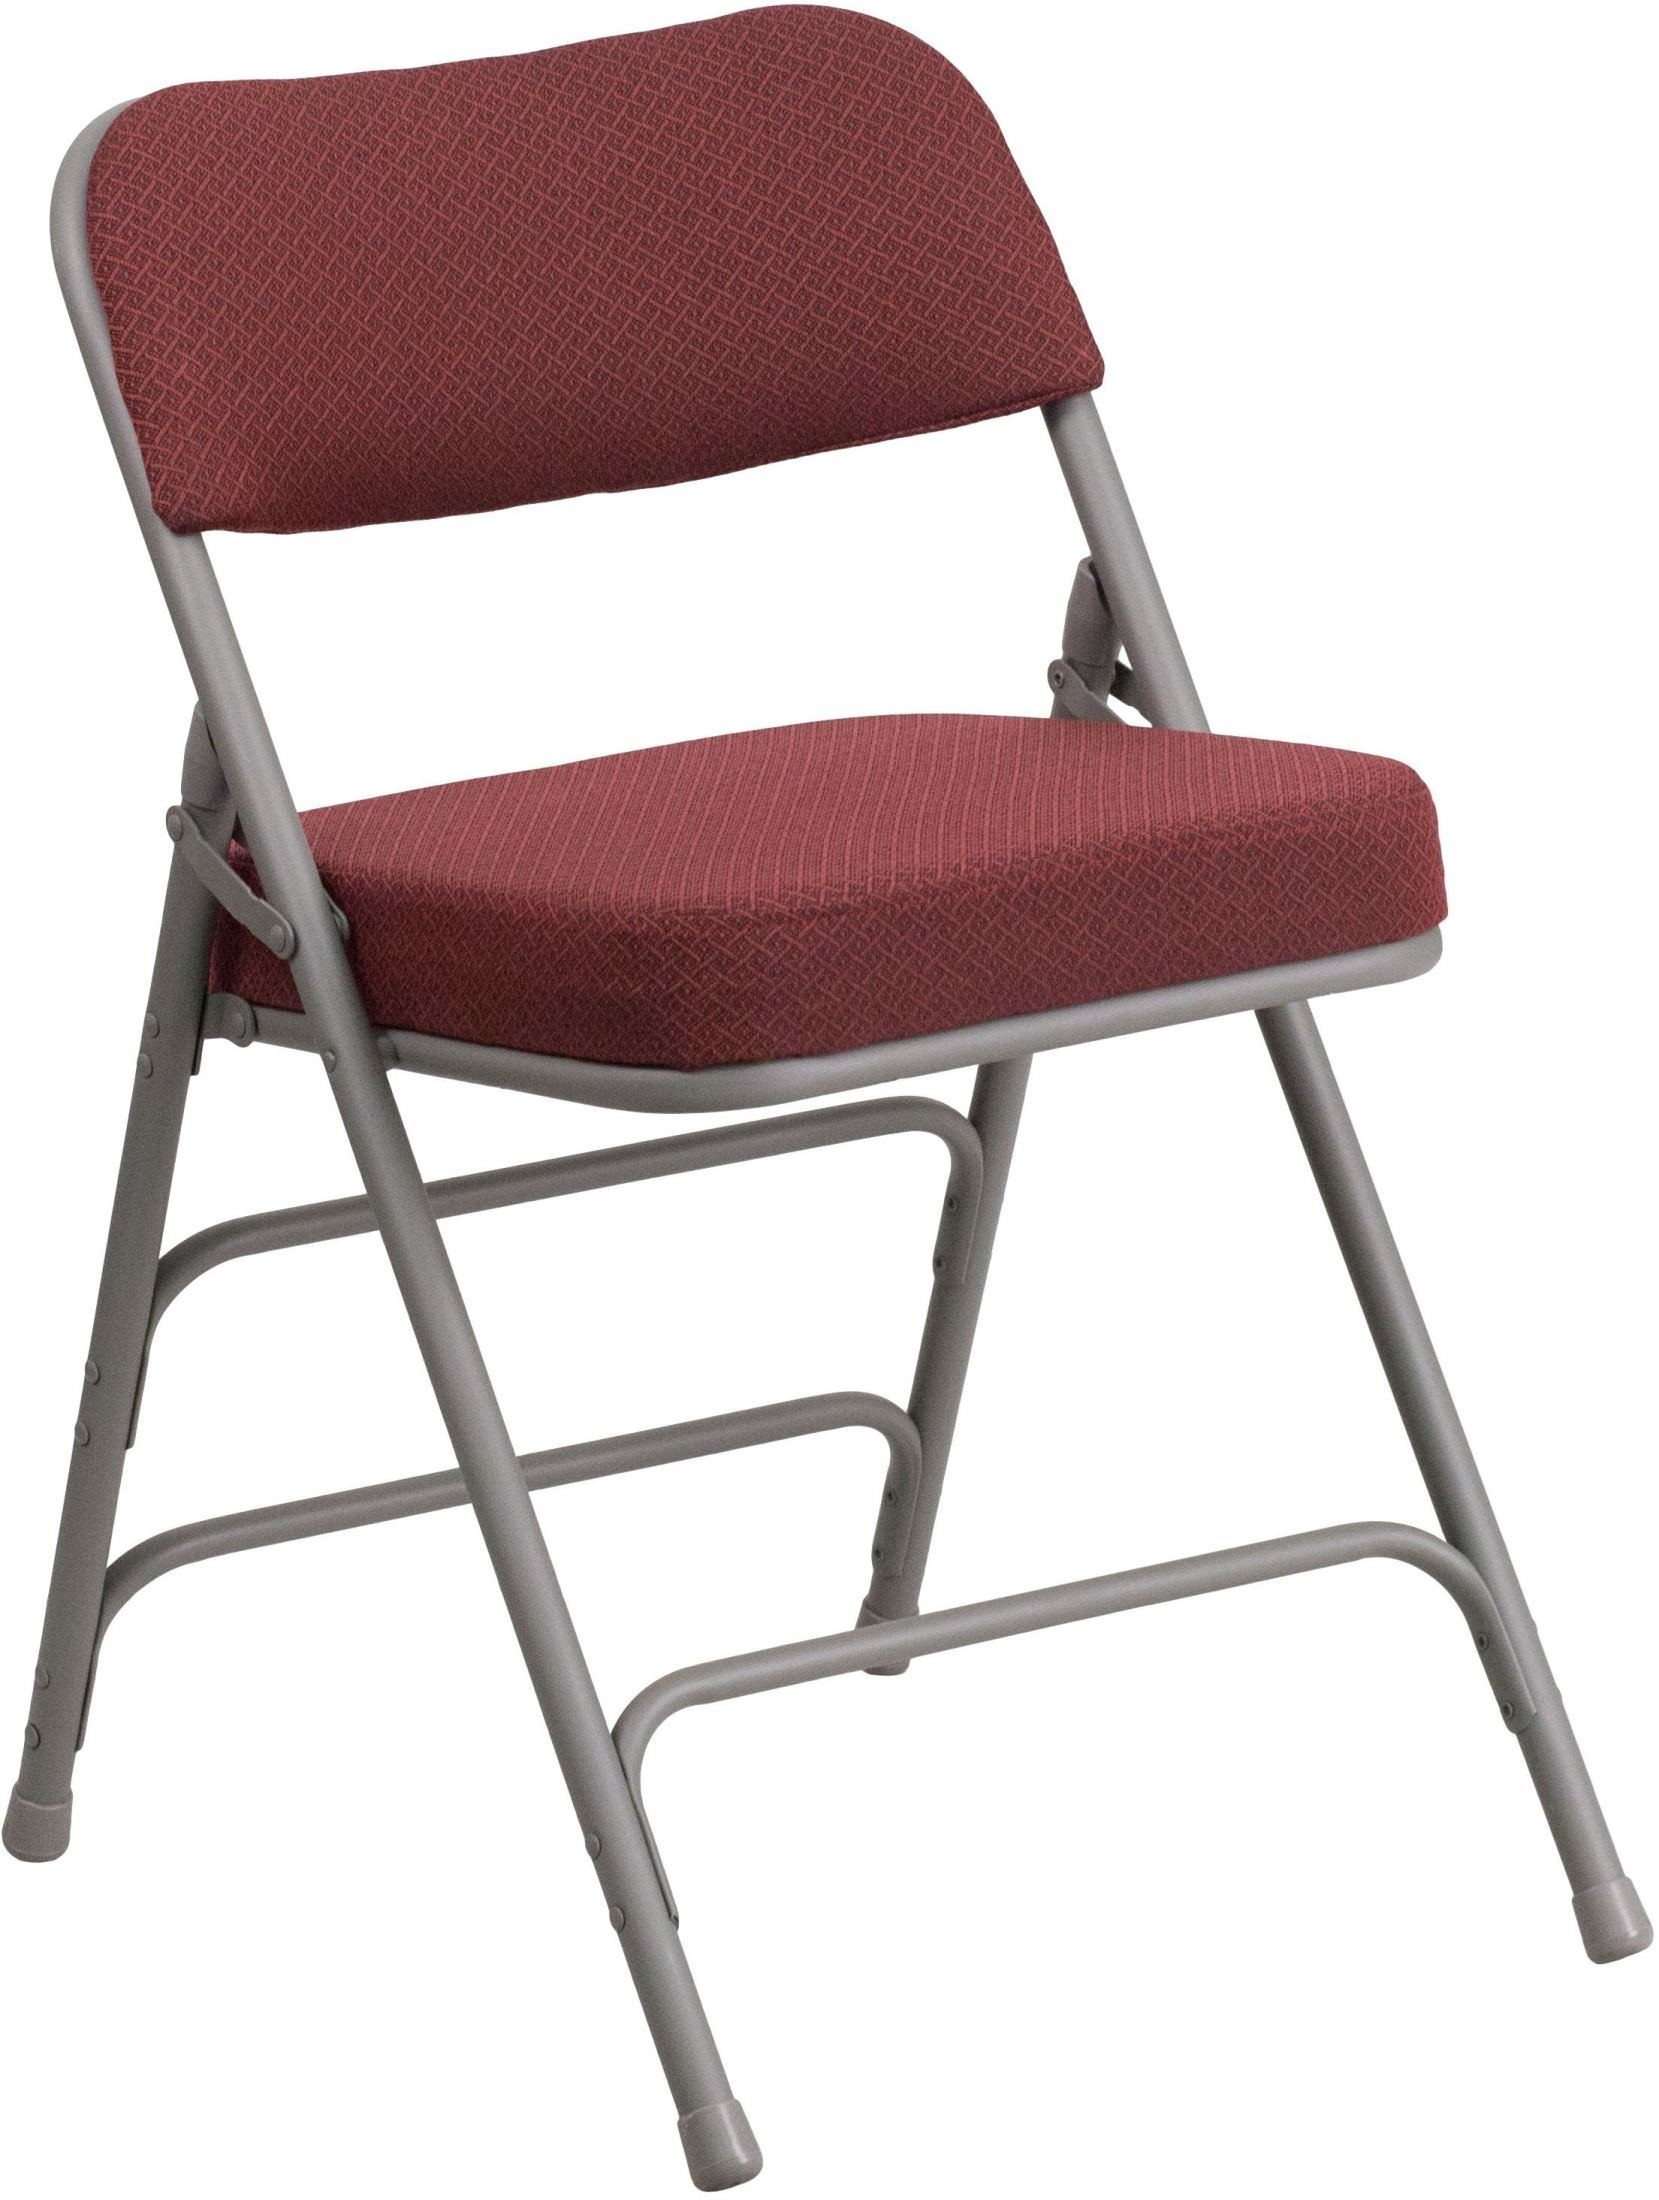 Upholstered Folding Chairs Hercules Series Premium Burgundy Fabric Upholstered Metal